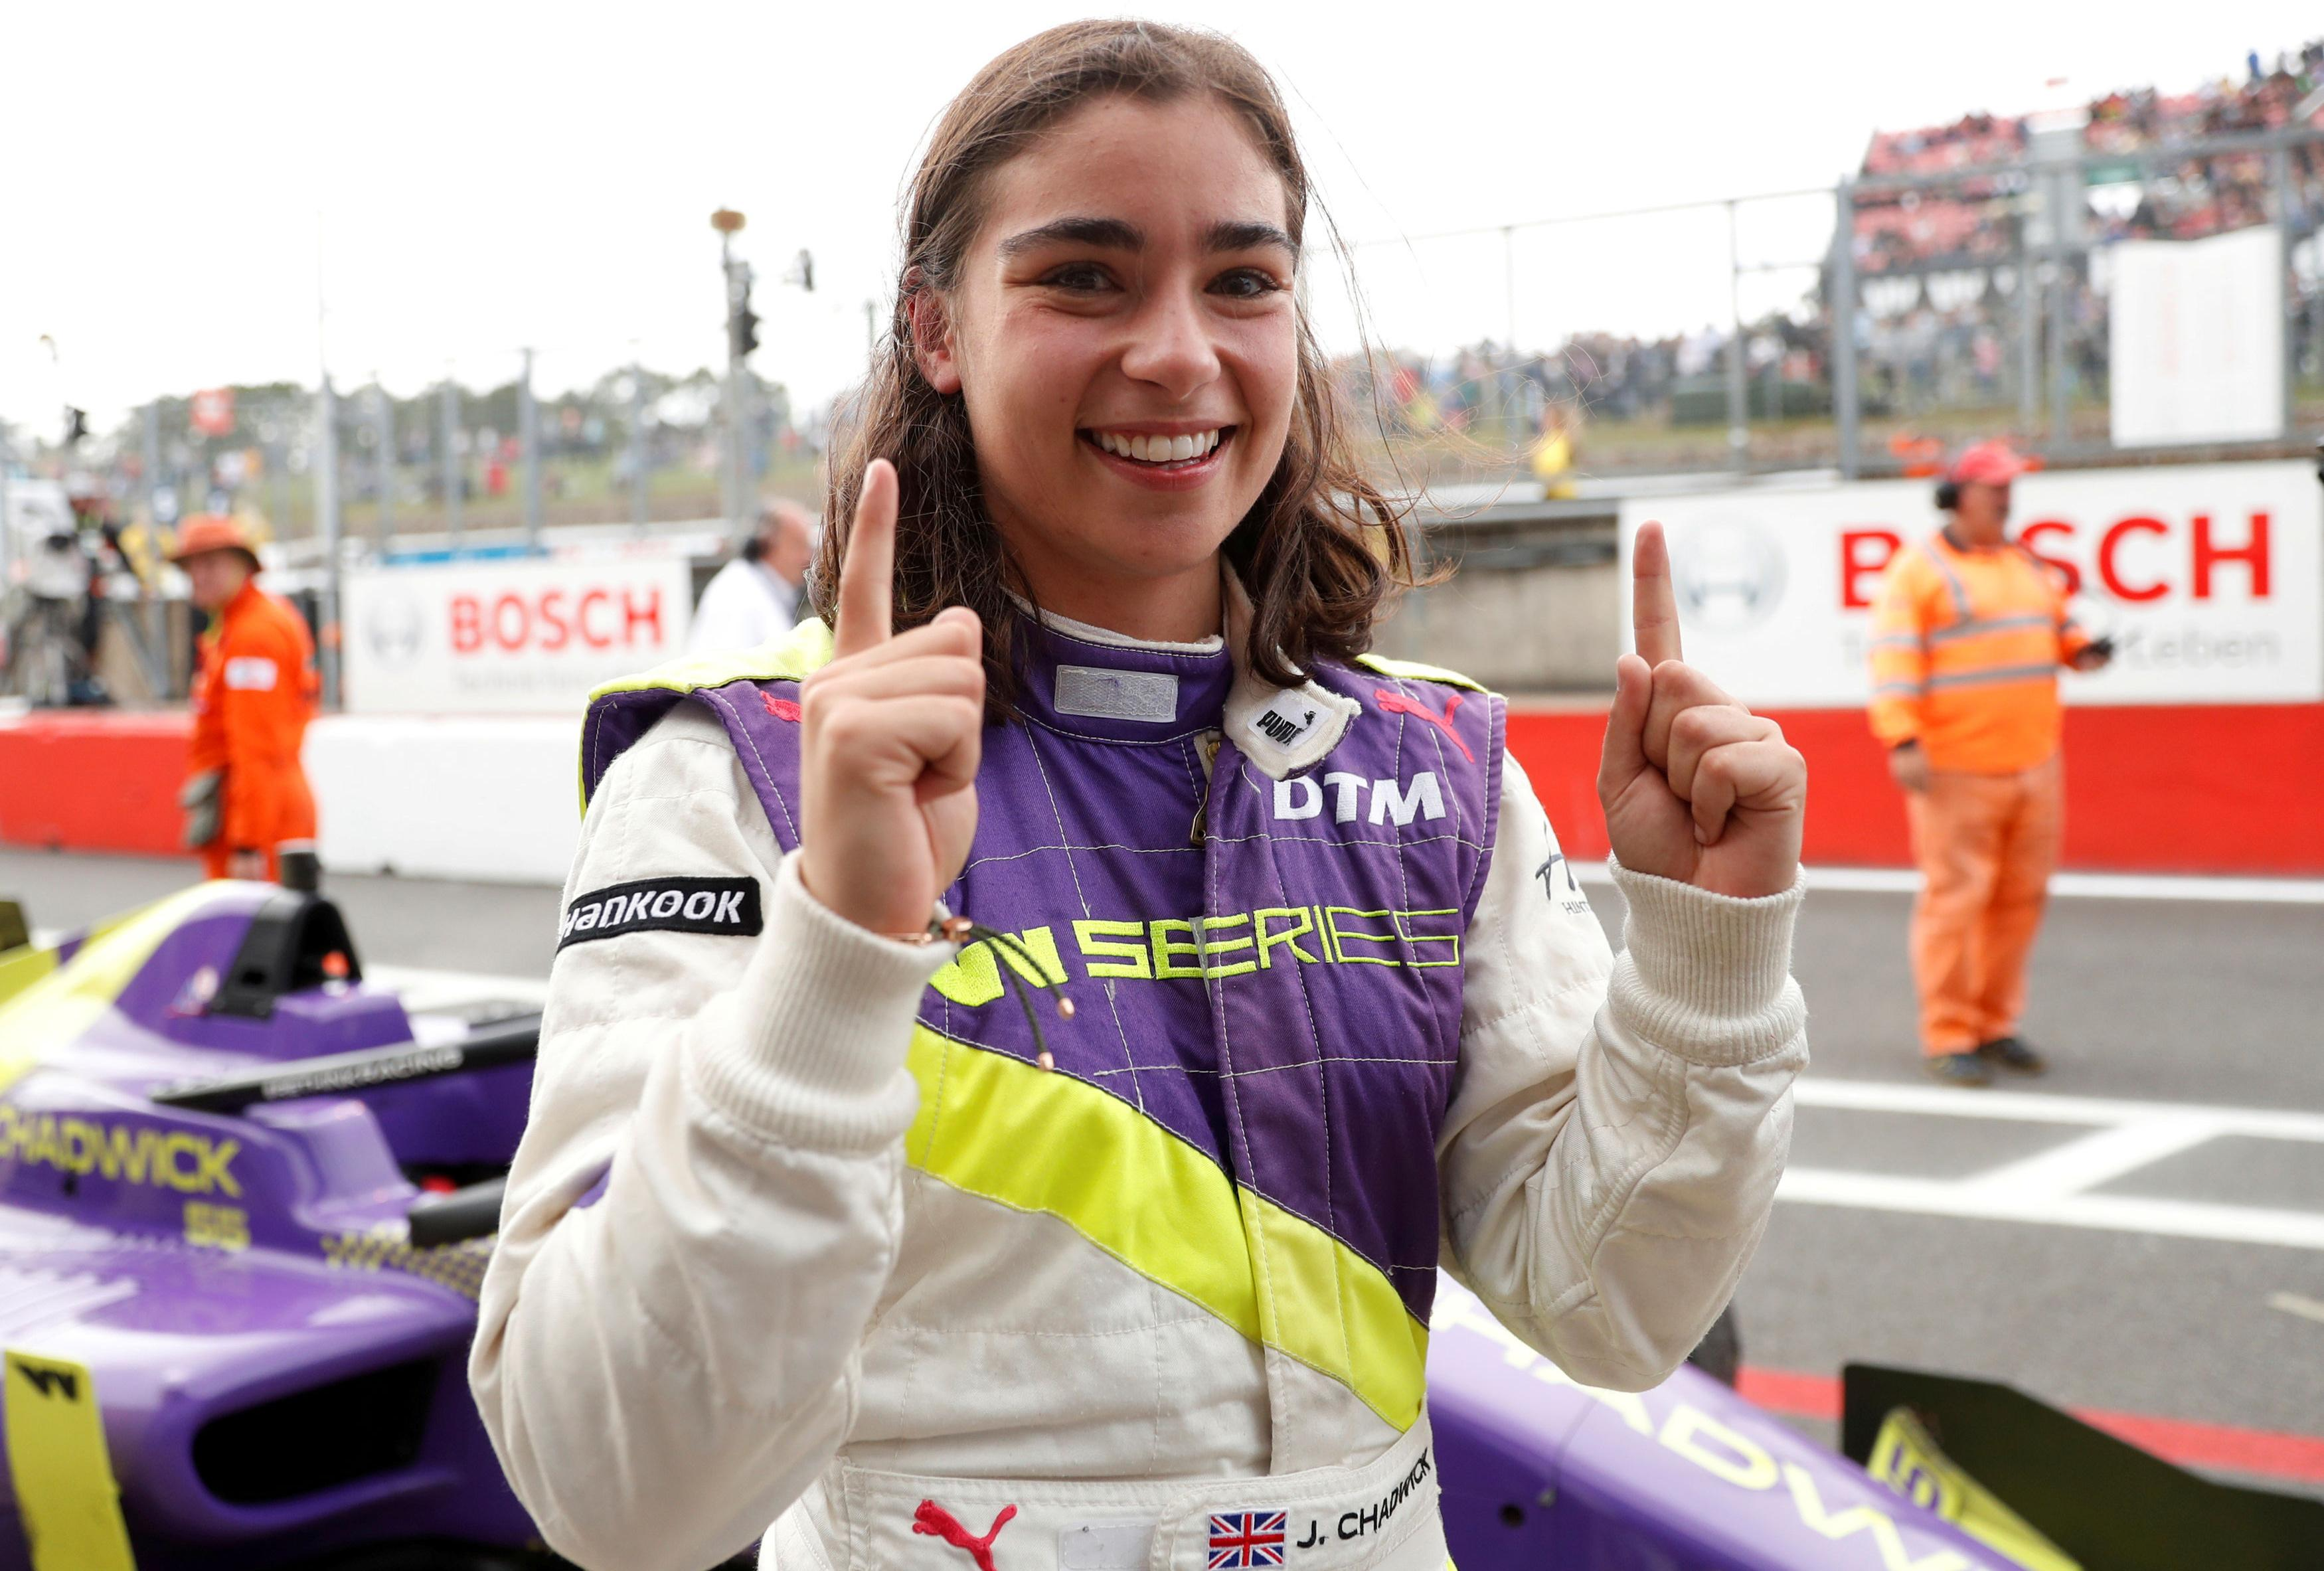 Jamie Chadwick inspired by Lewis Hamilton in ambition to compete in F1